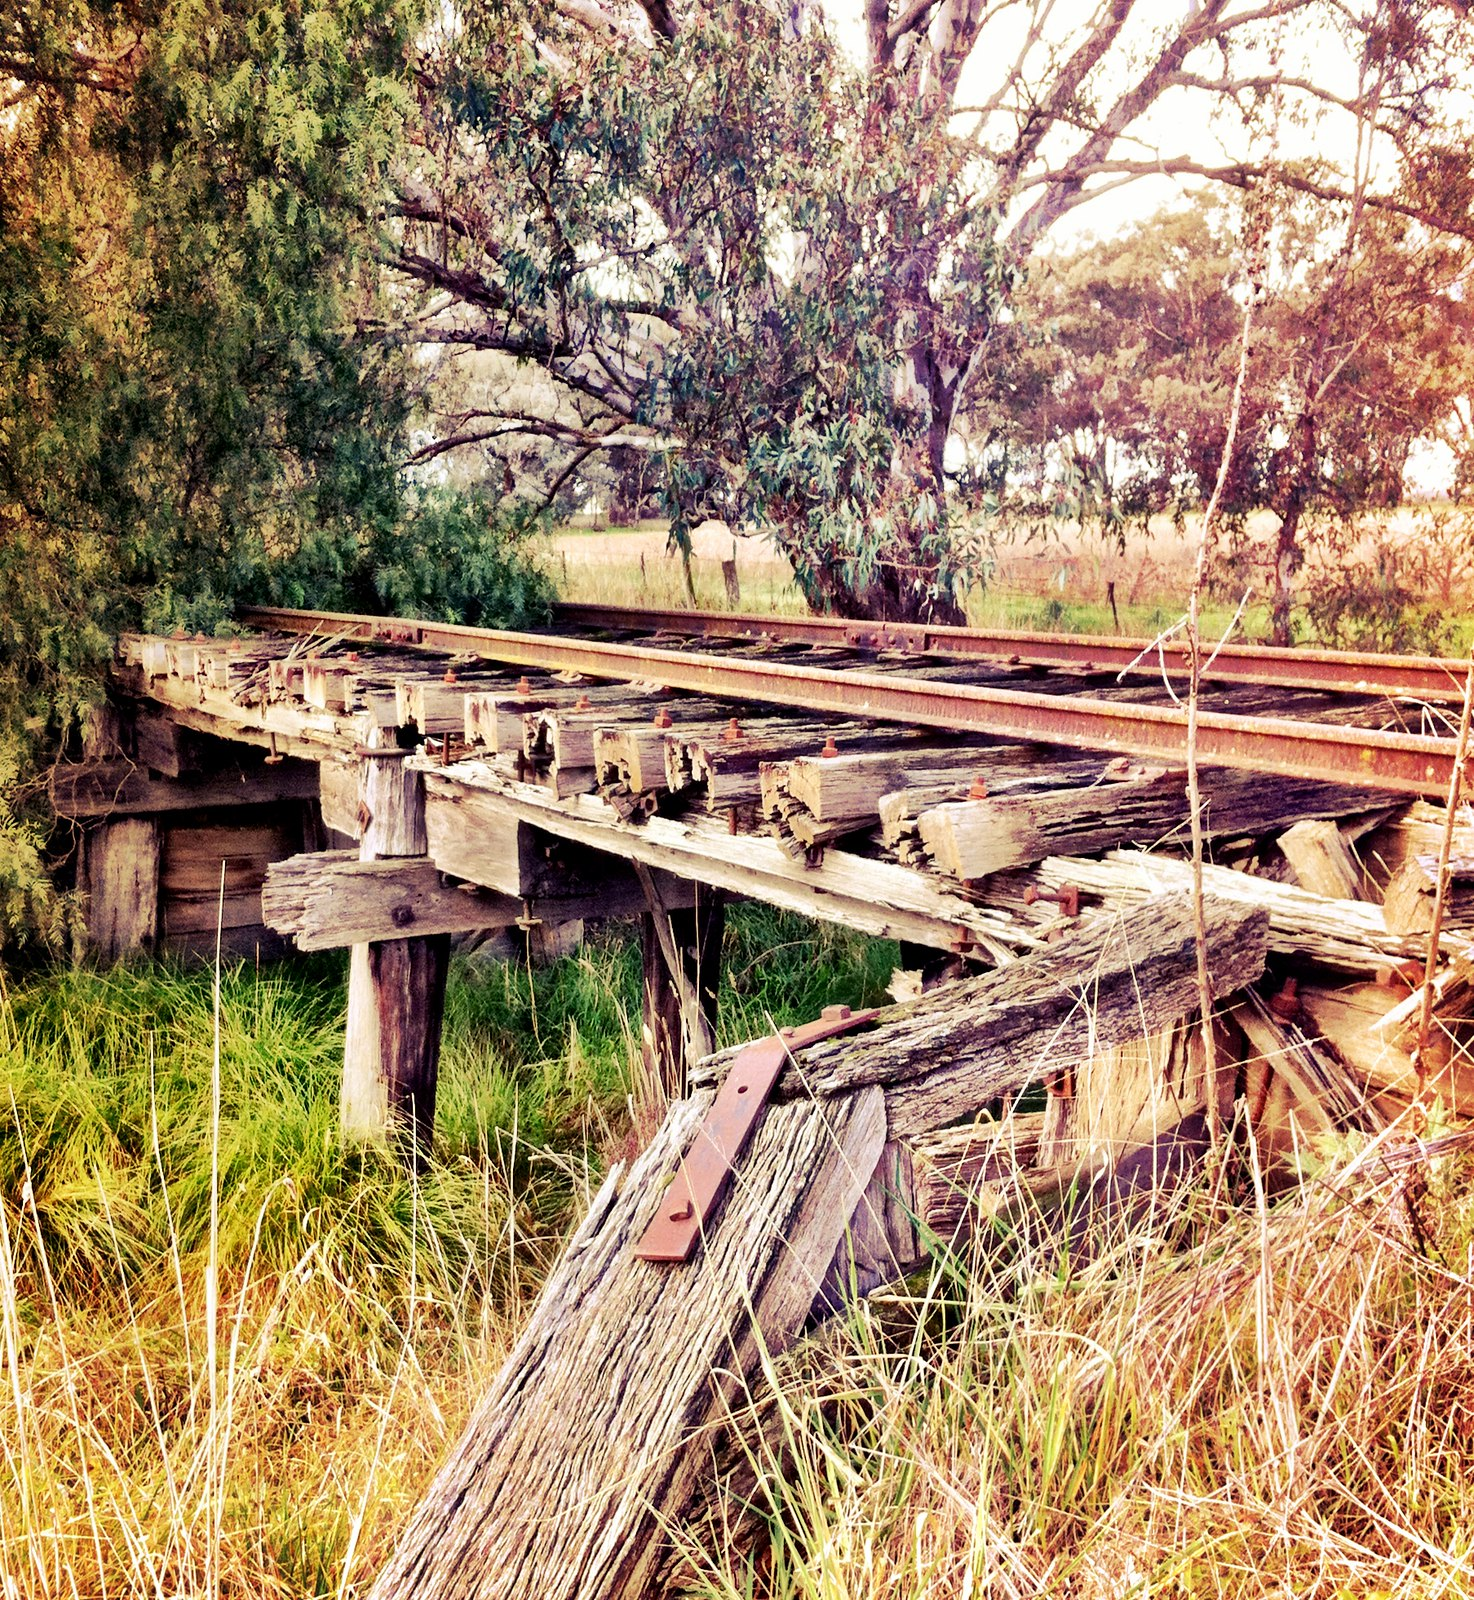 Tumbarumba Branch line by Cutto